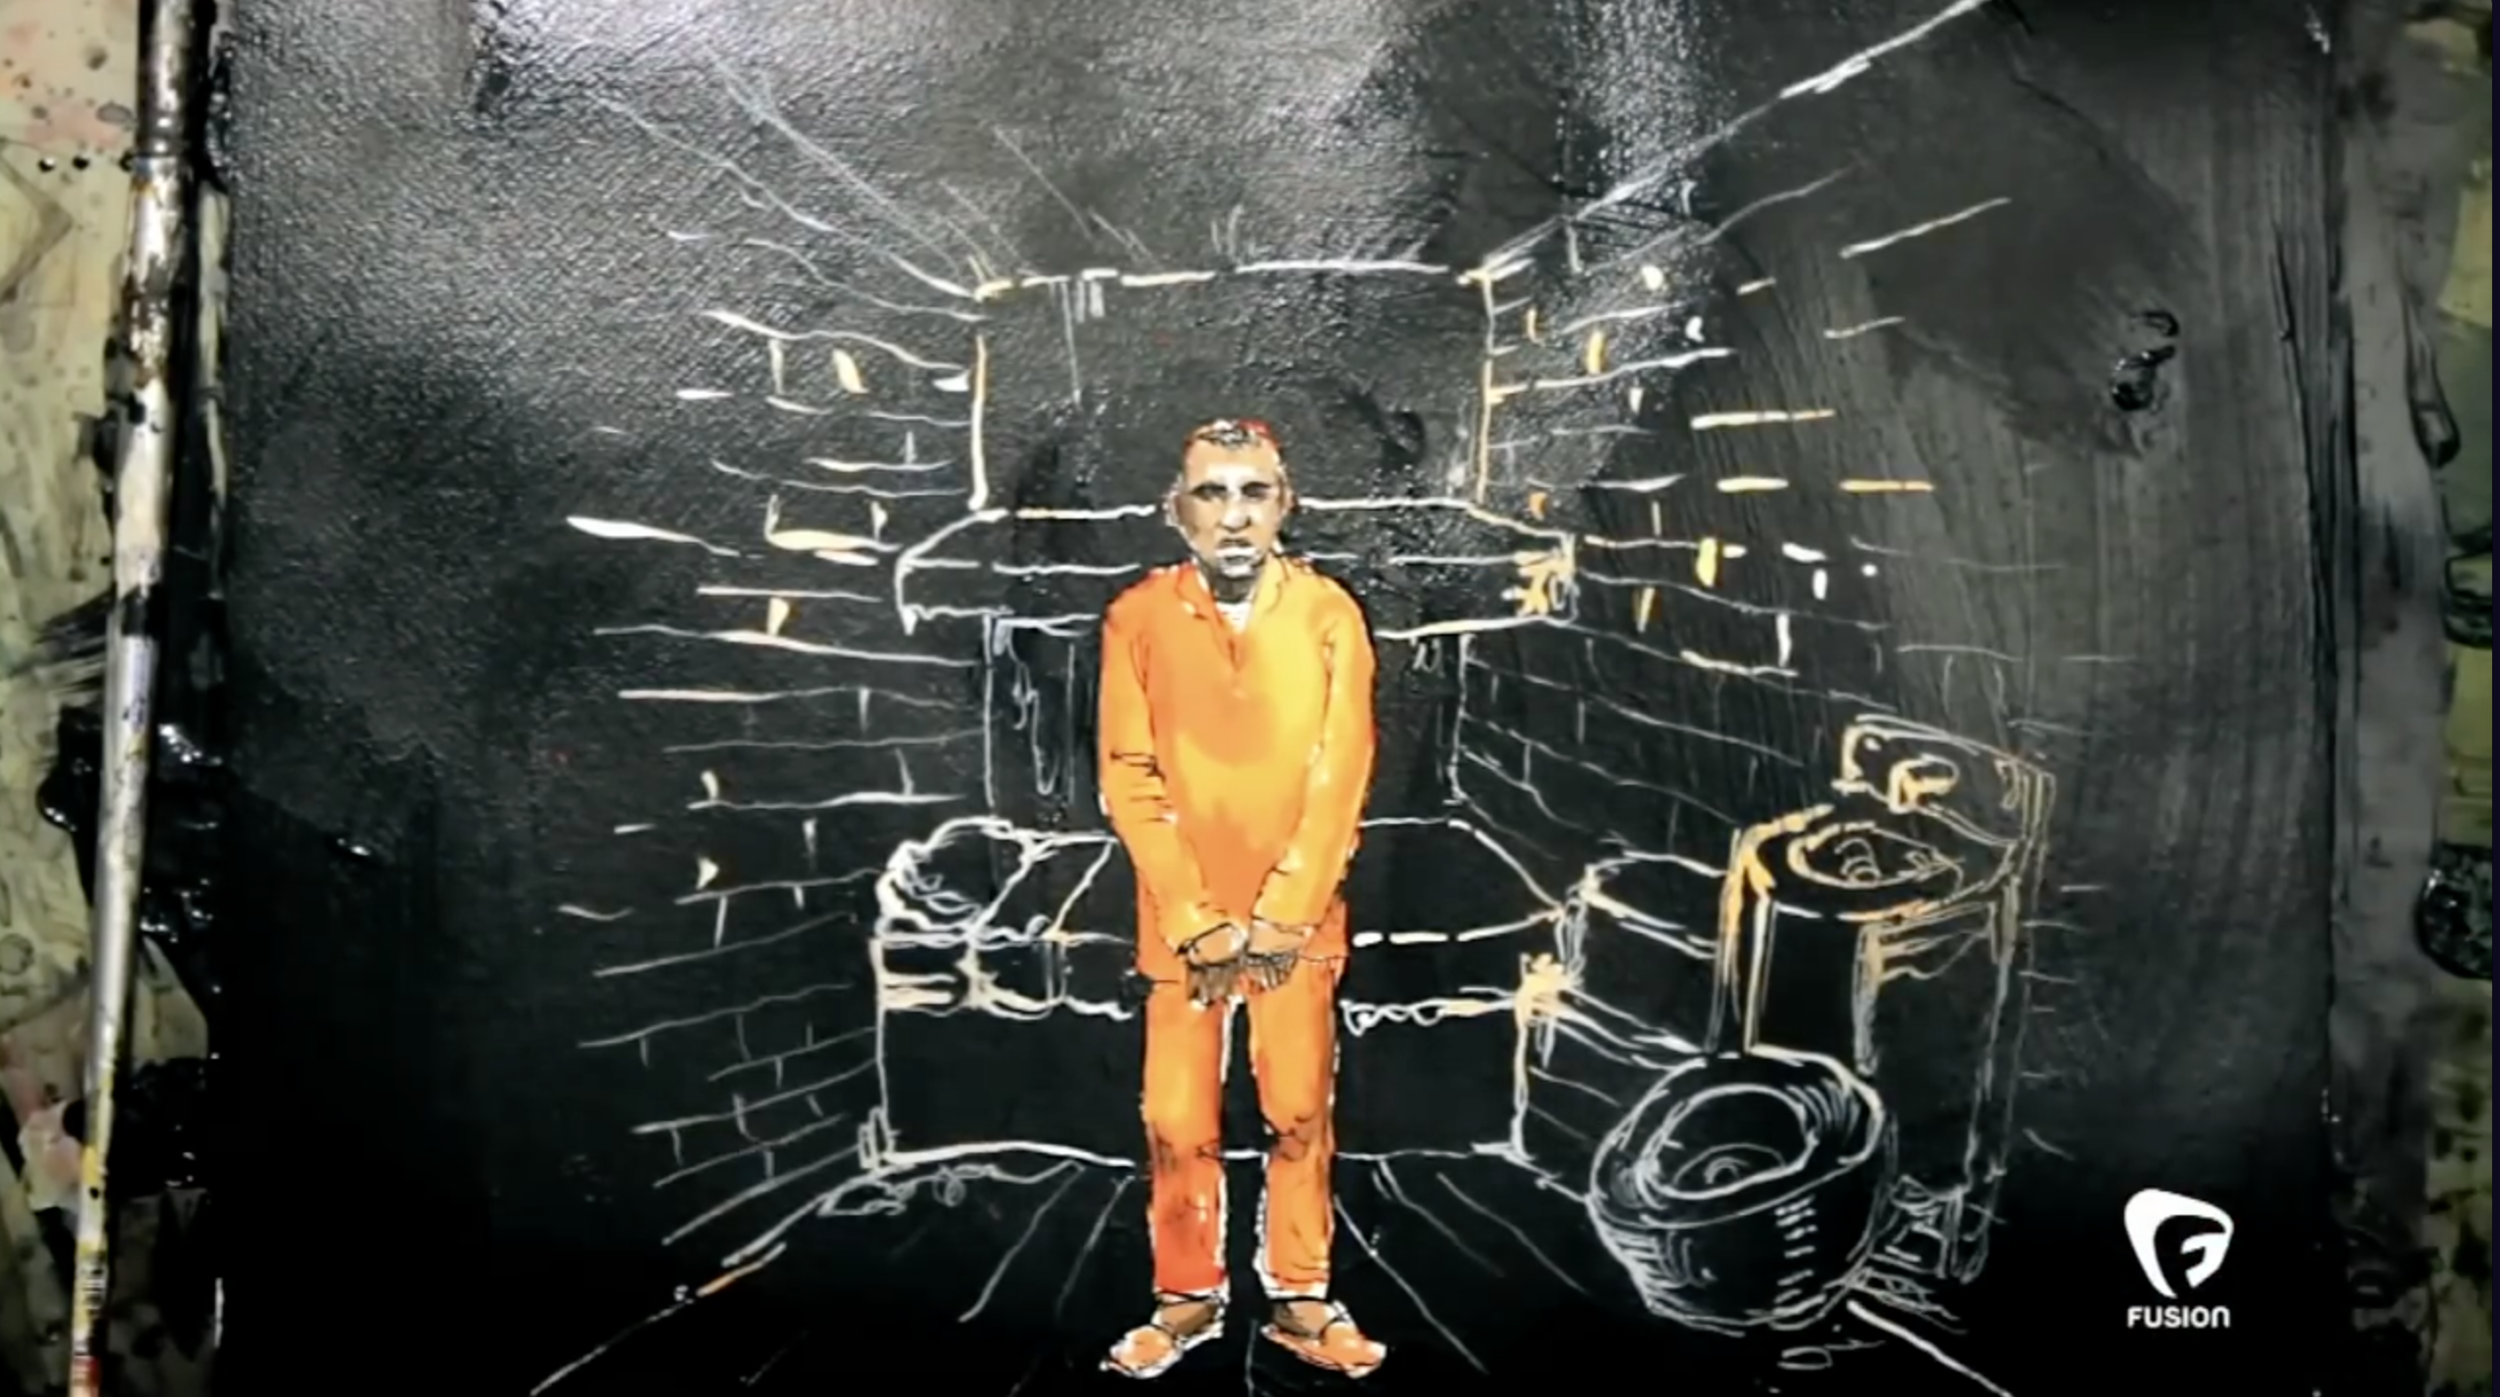 solitary confinement is torture - fusion